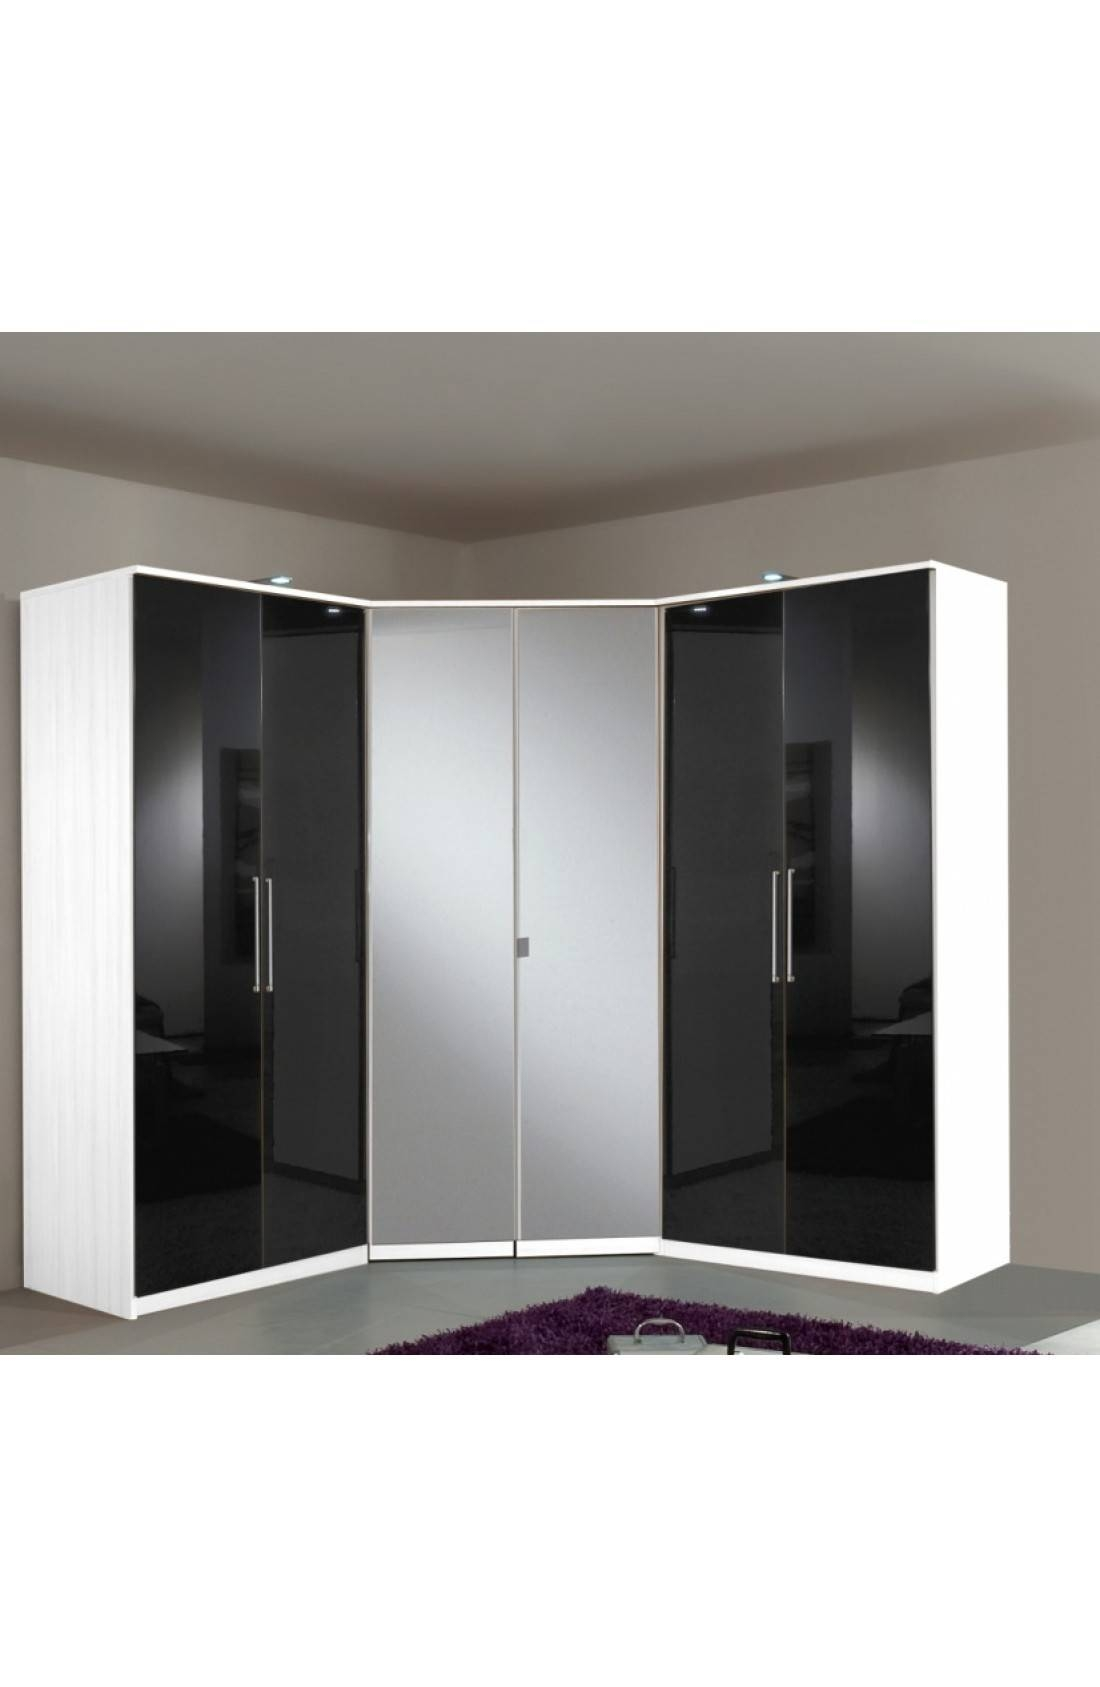 Slumberhaus 'gamma' 6 Door Corner Wardrobe Fitment With White intended for Black Wardrobes With Mirror (Image 13 of 15)